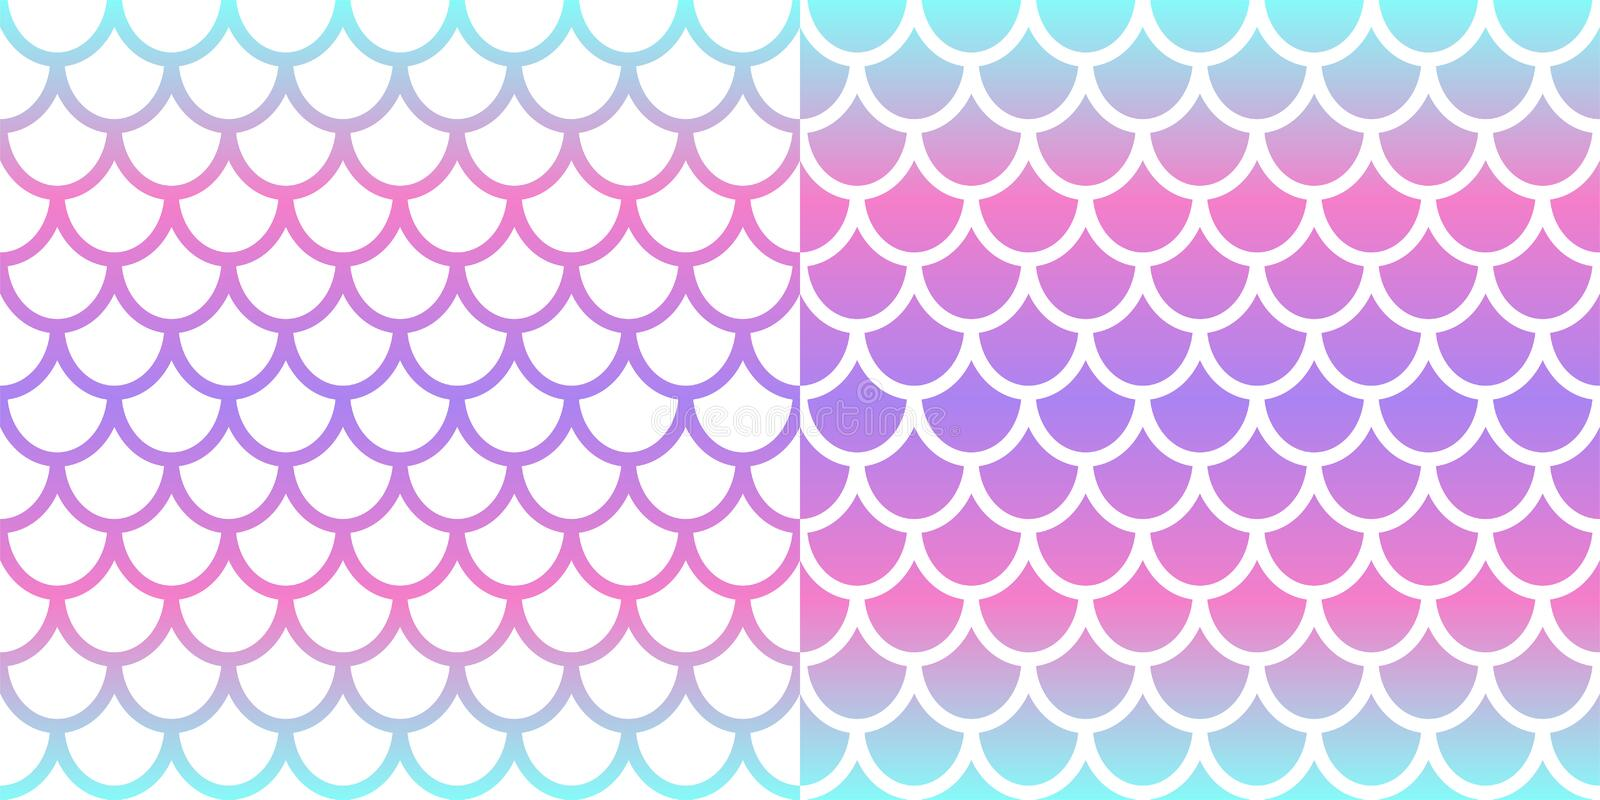 Mermaid seamless pattern set. Pink and blue holographic mermaid scale background. Fish scale pattern. Vector stock illustration